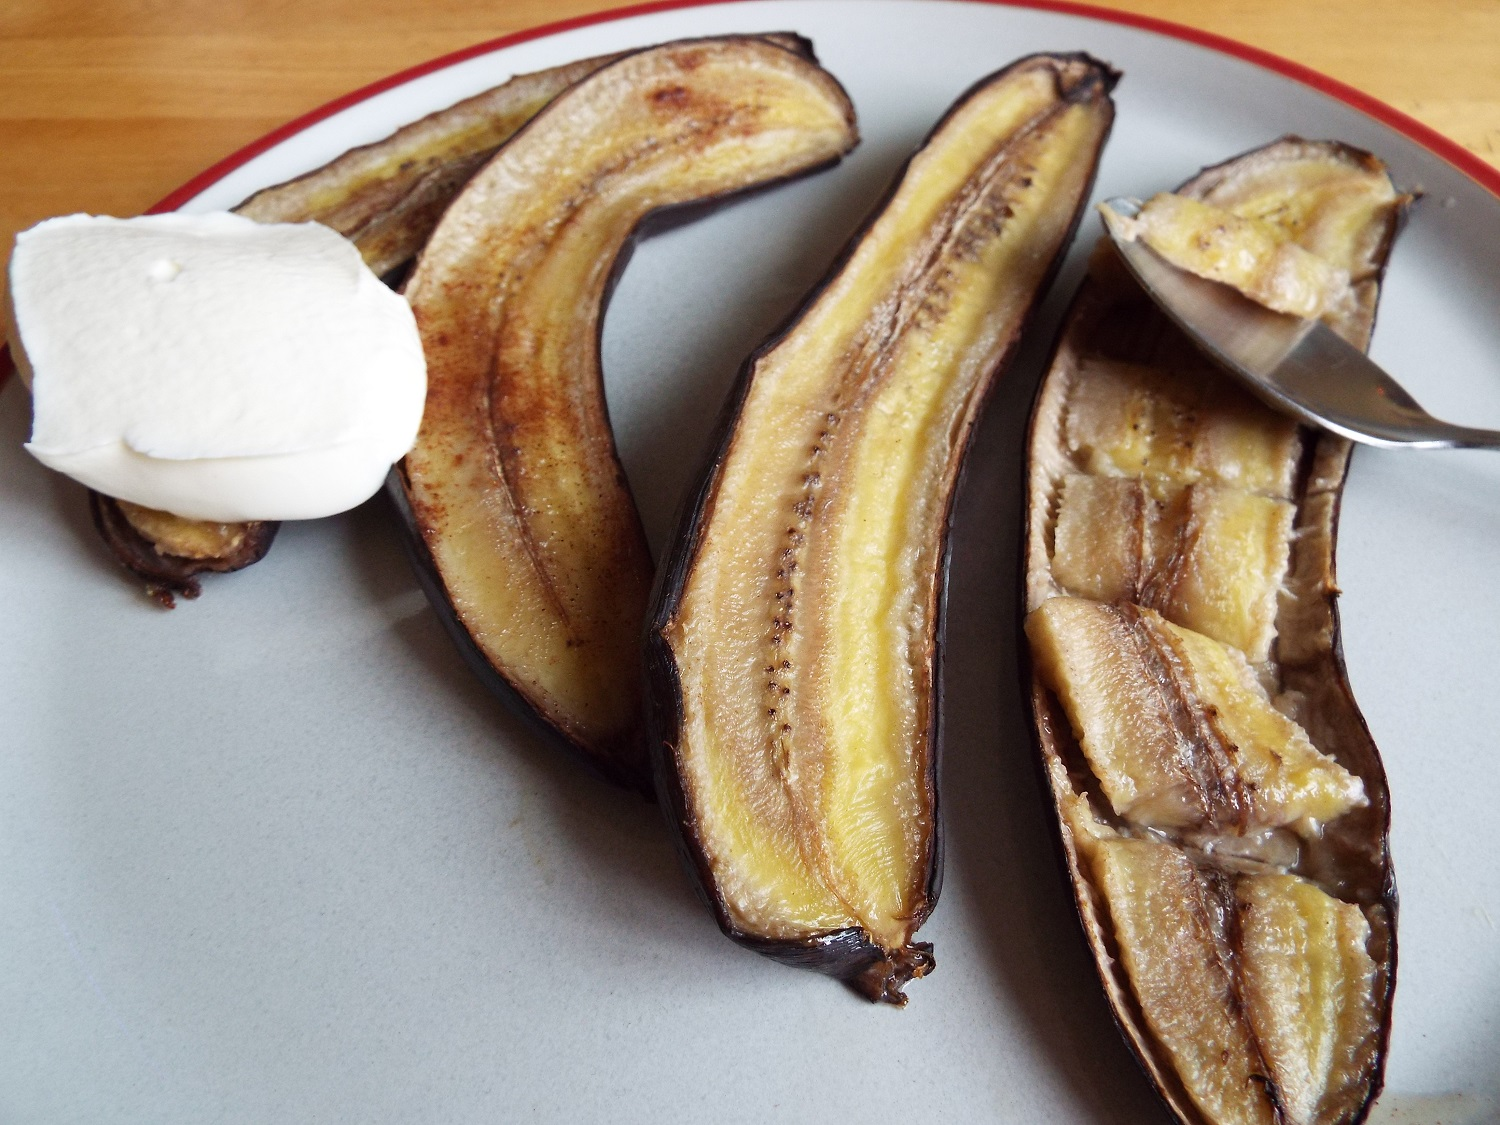 Baked Bananas - Slice bananas, and (in their skins) bake in foil for about 20 minutes.They are sweet, so can be served plain; or with honey and/or yogurt.